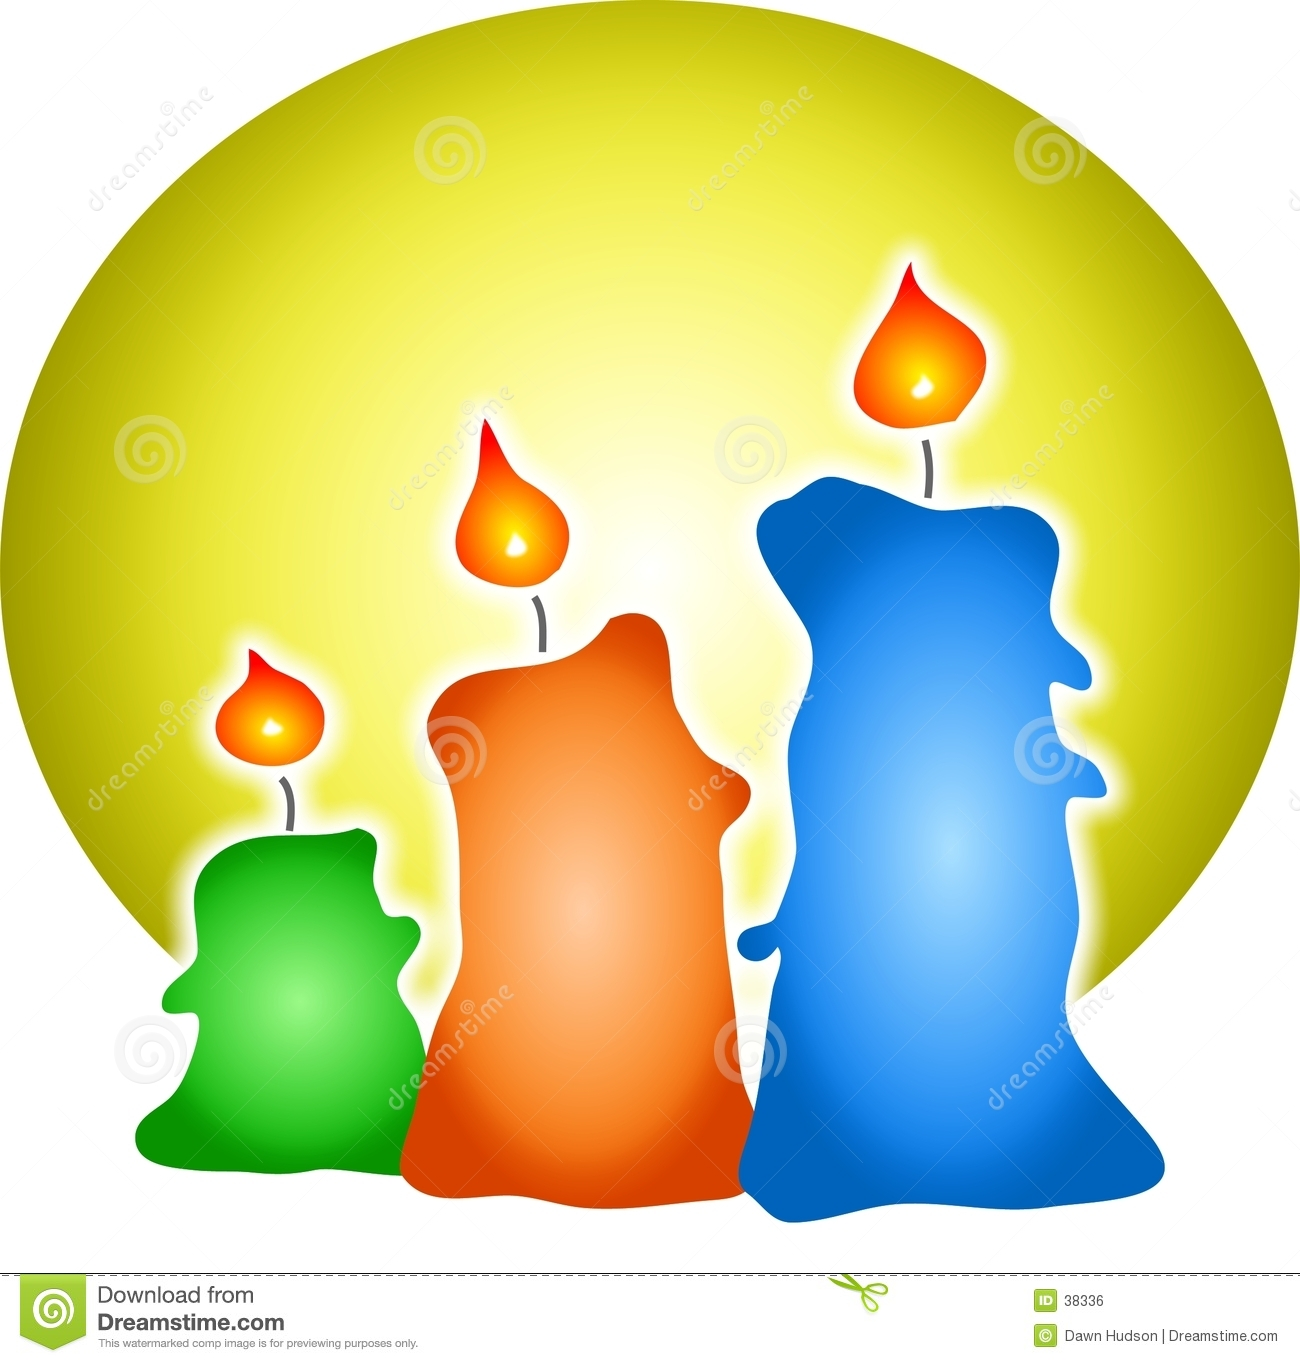 Velas coloreadas